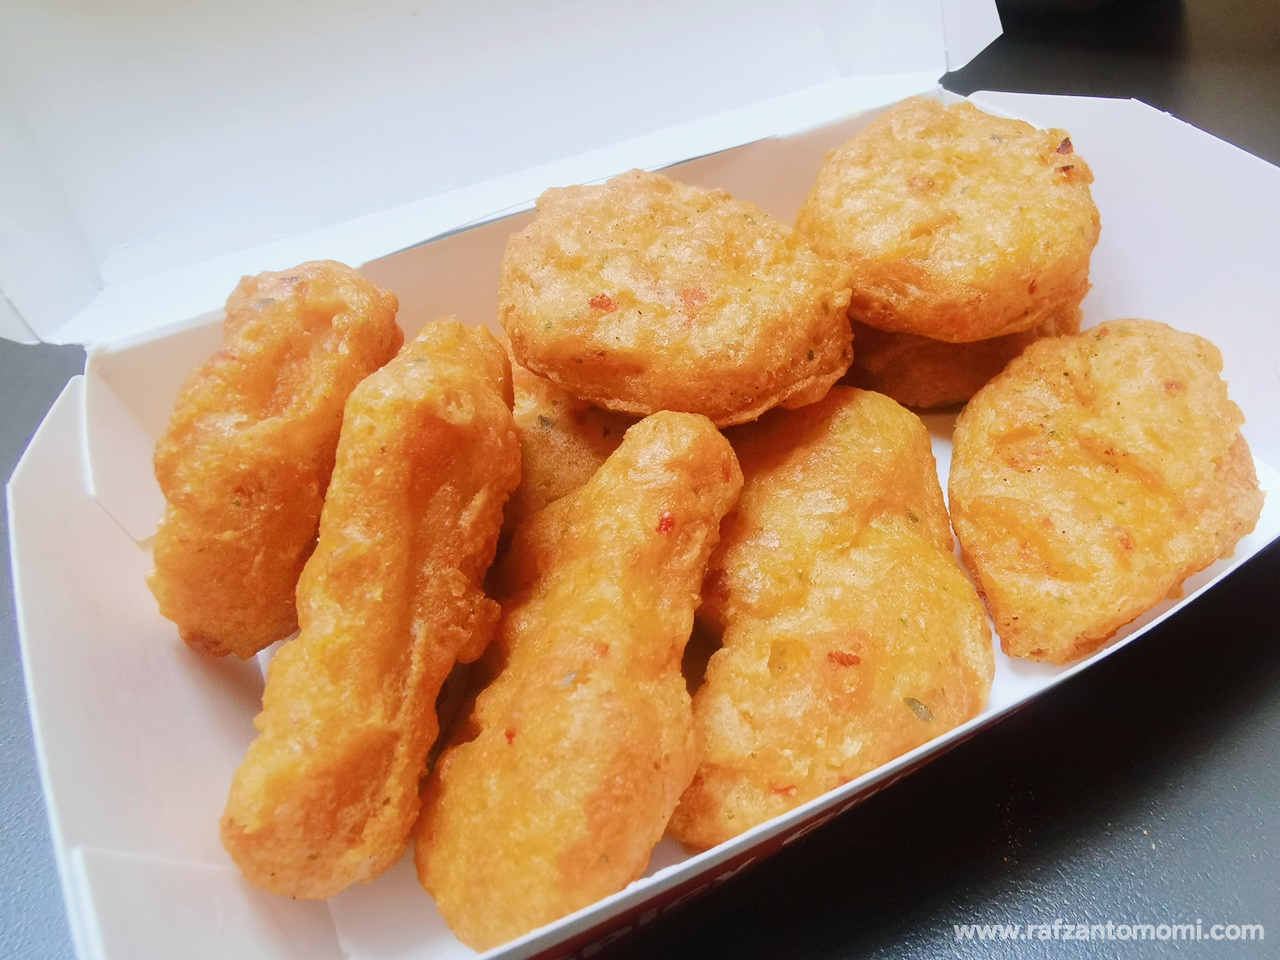 Cuba Spicy Chicken McNuggets®